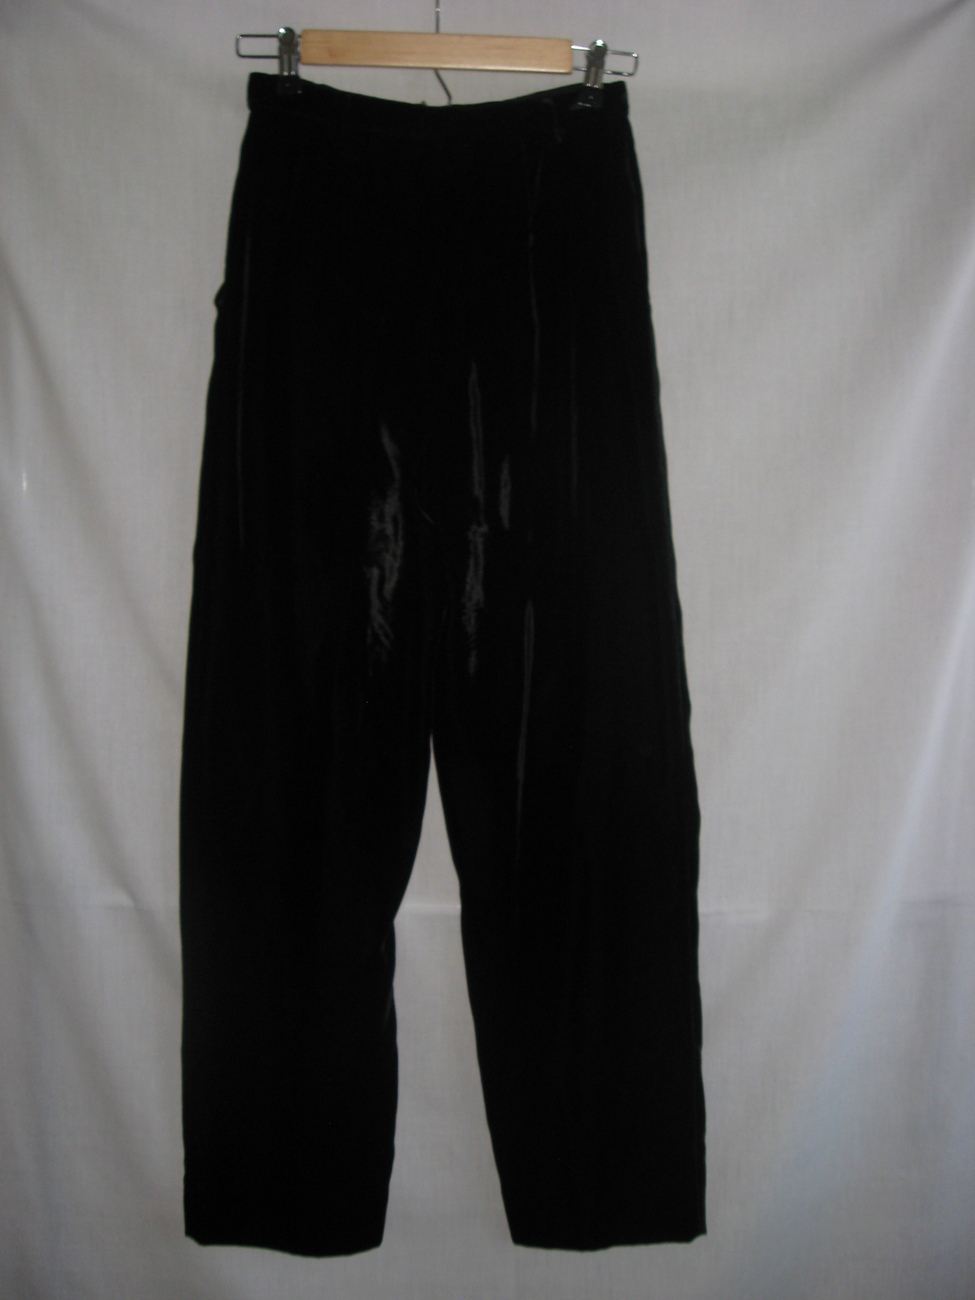 women s black velvet dress pants photo - 1